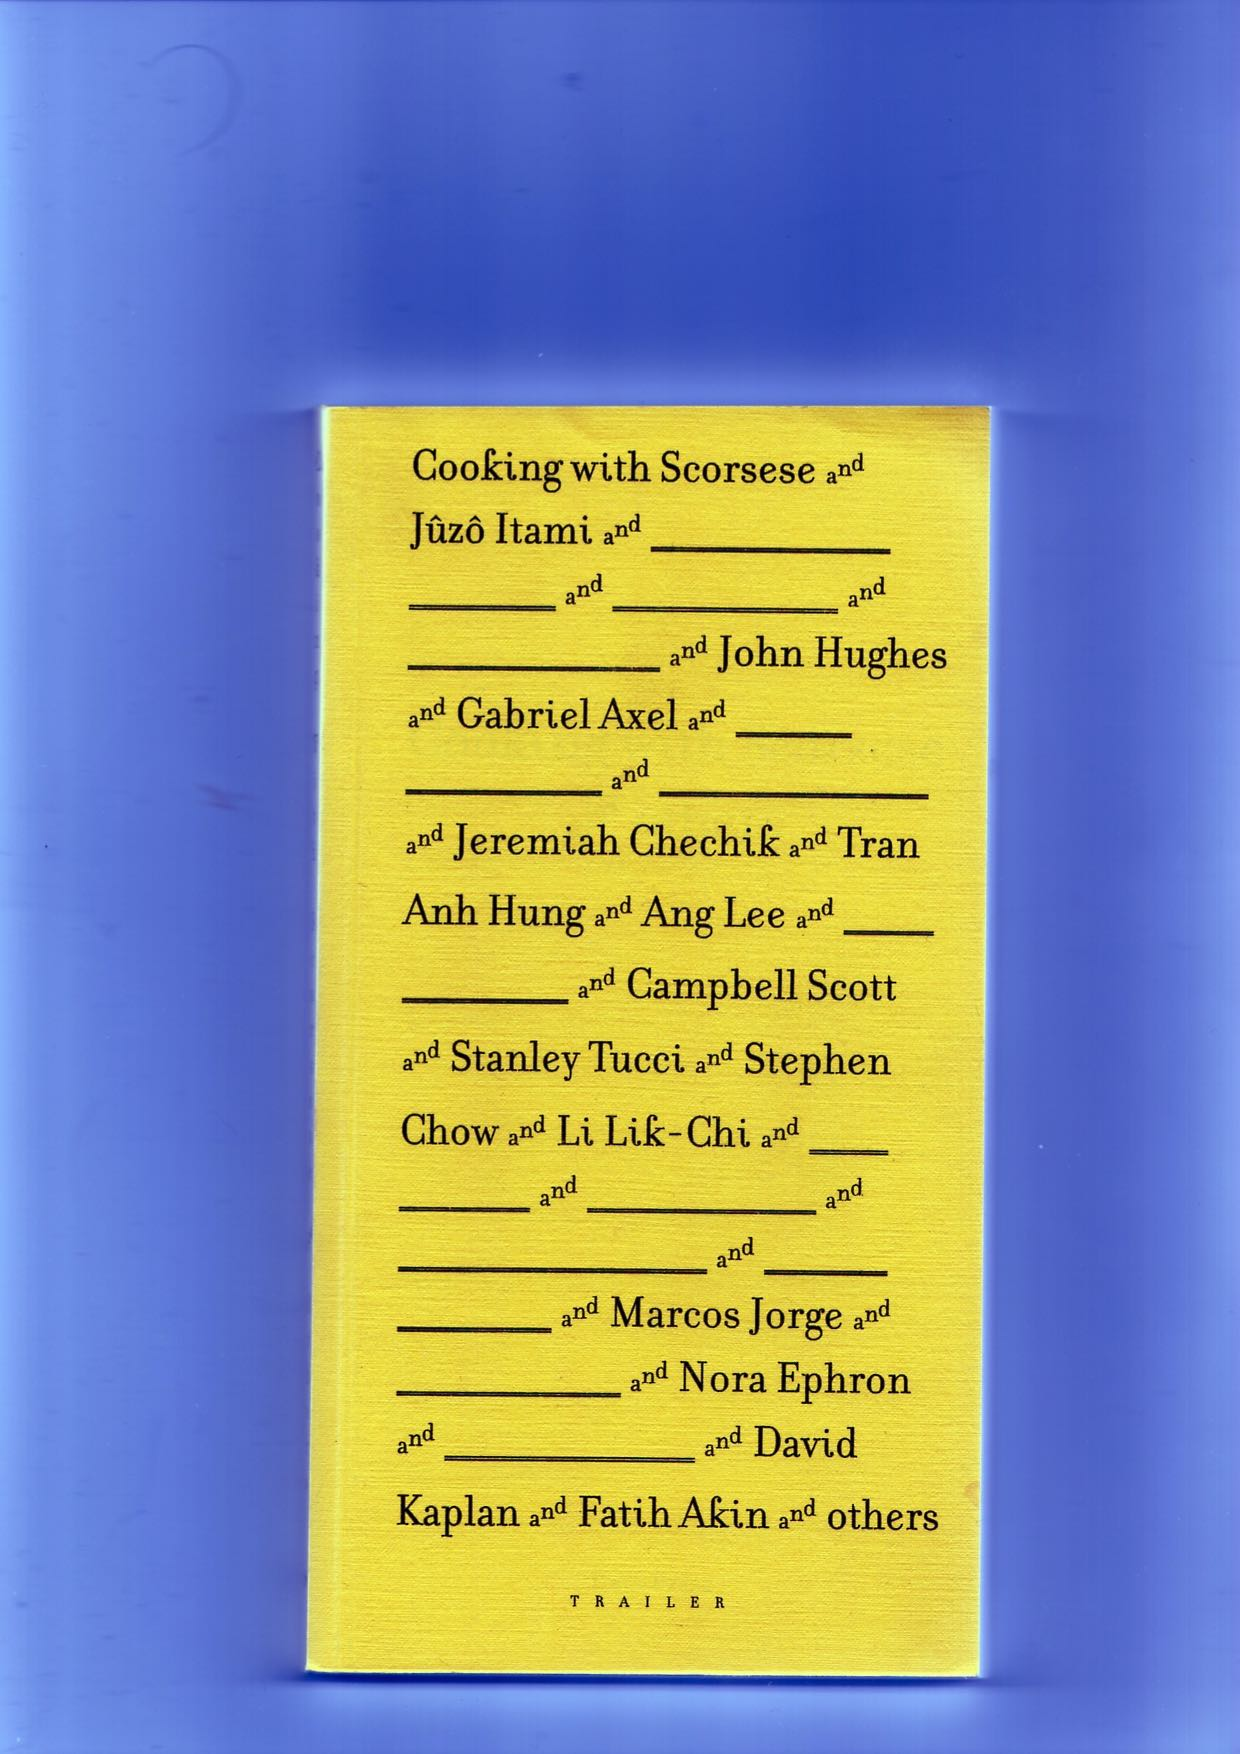 PELLERIN, Ananda (ed.) - Cooking with Scorsese and Others #1